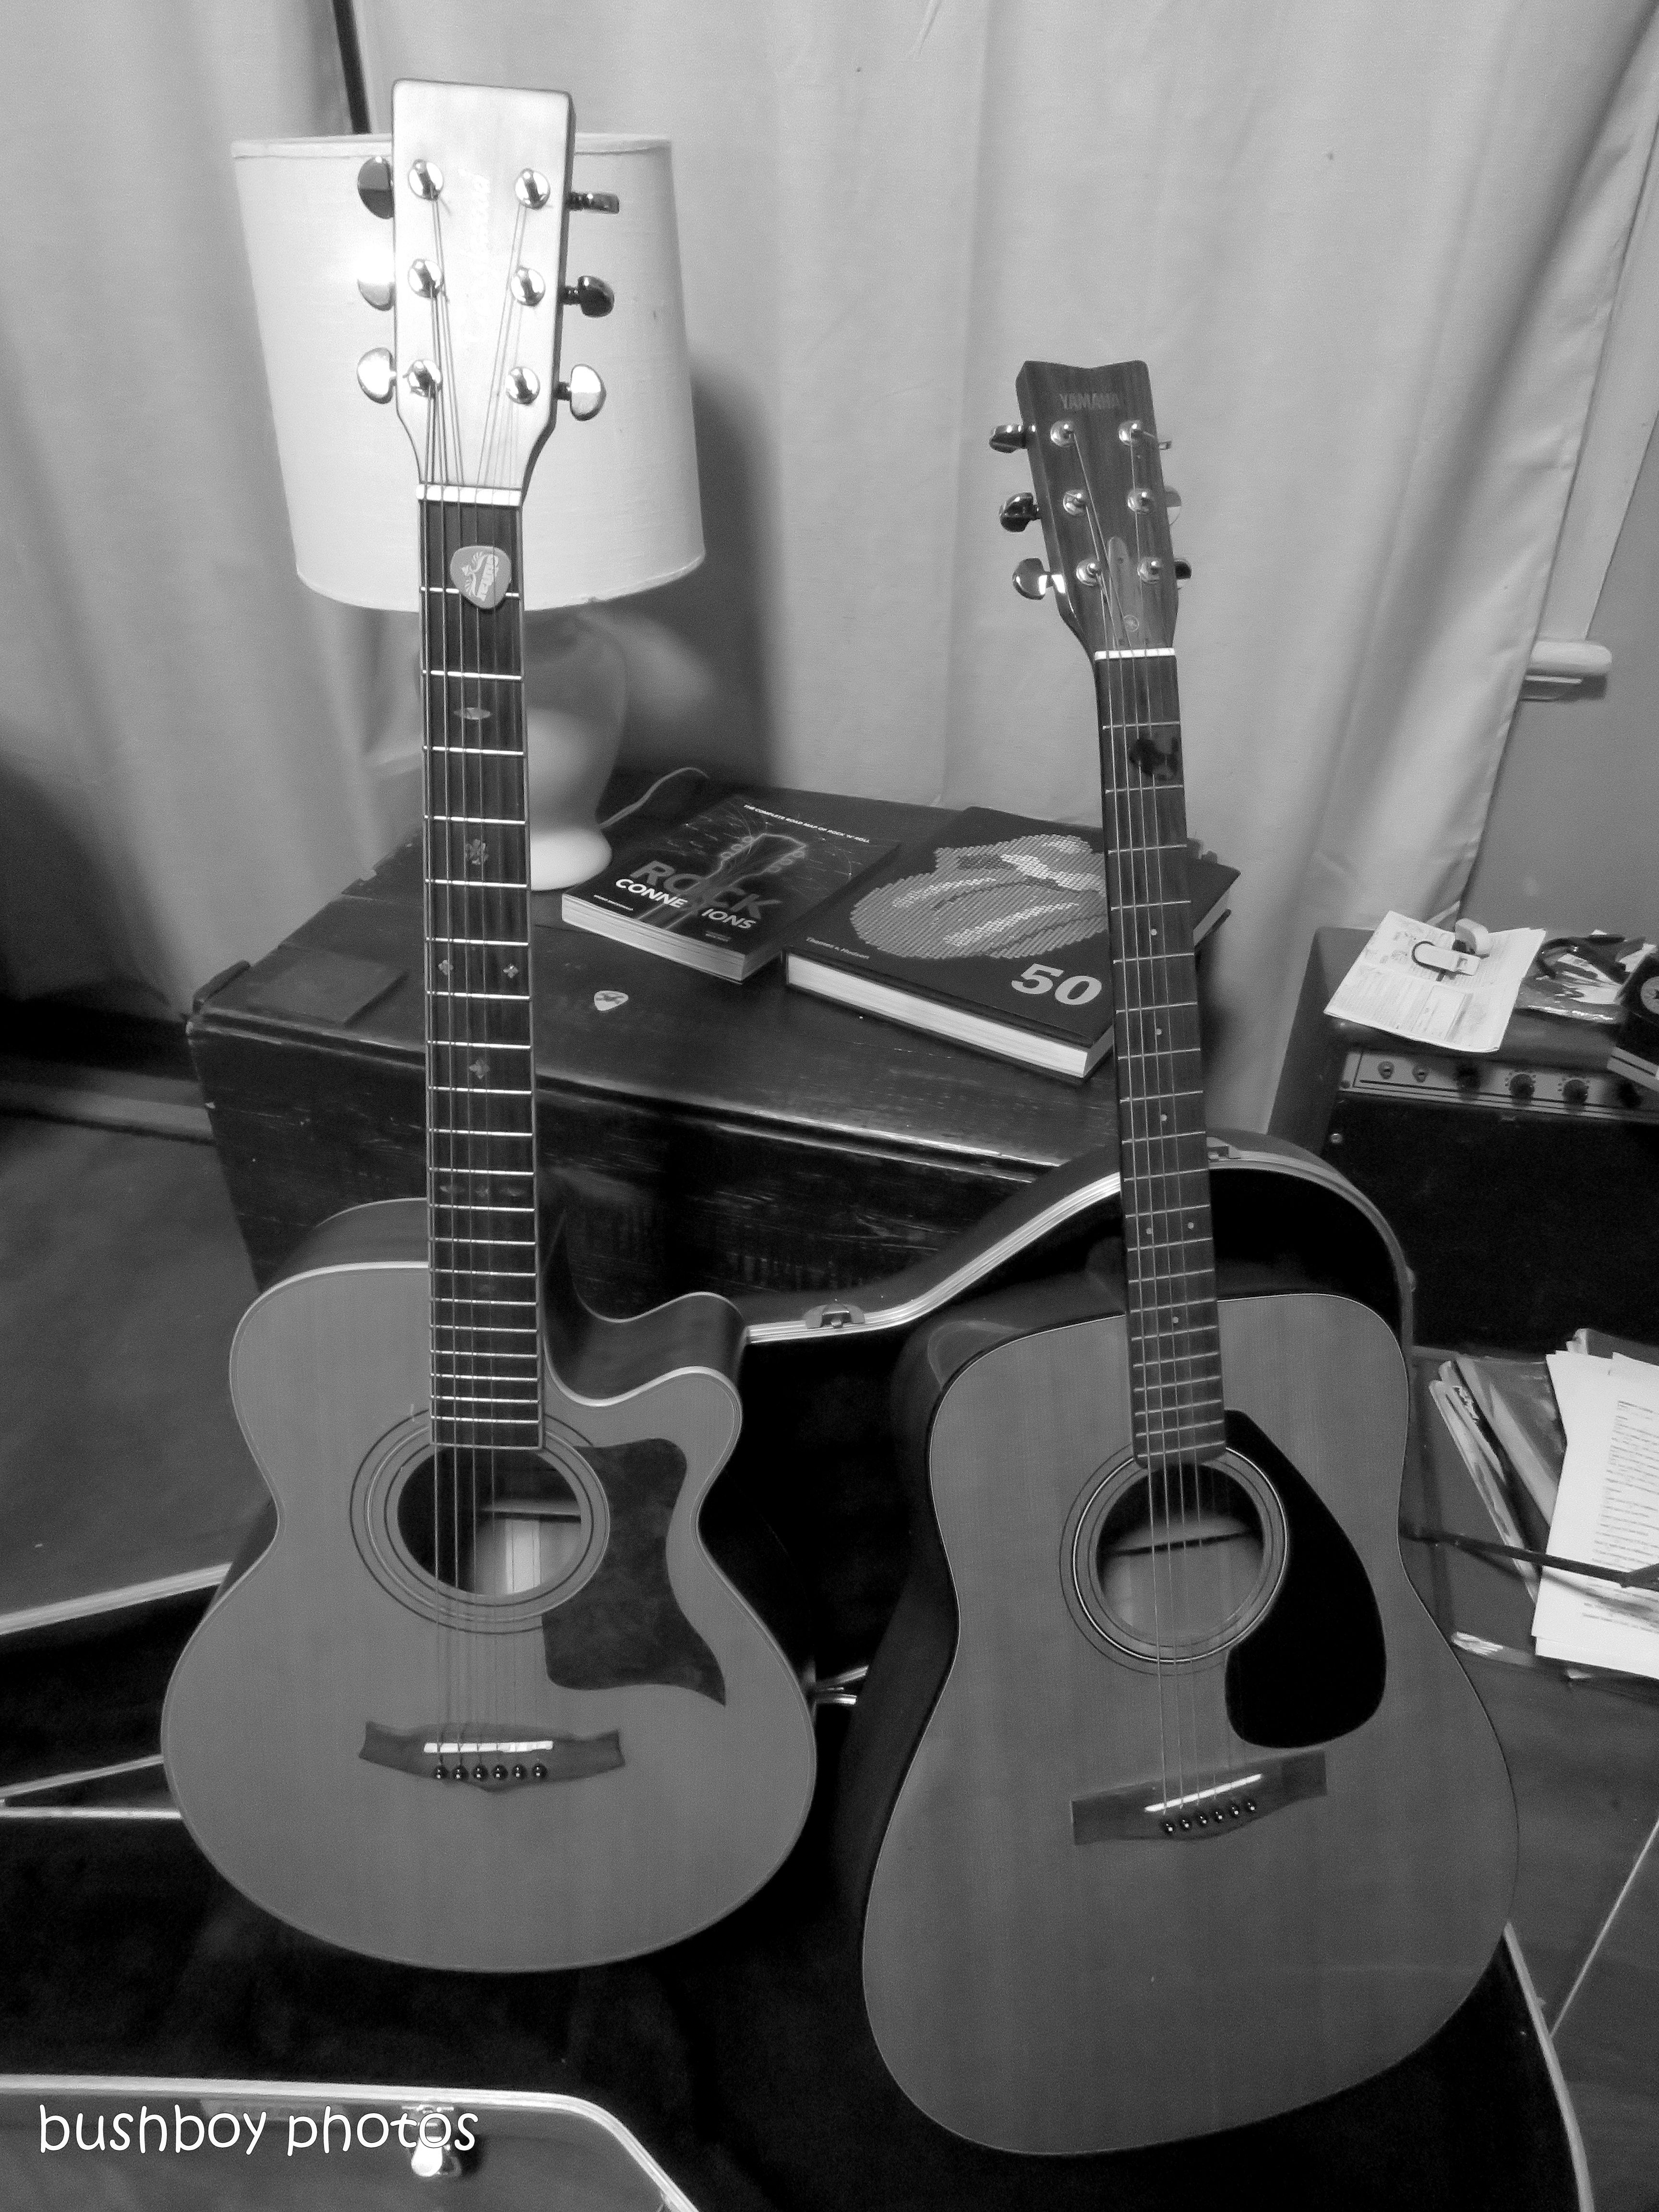 170707_bandw_playtime_two guitars